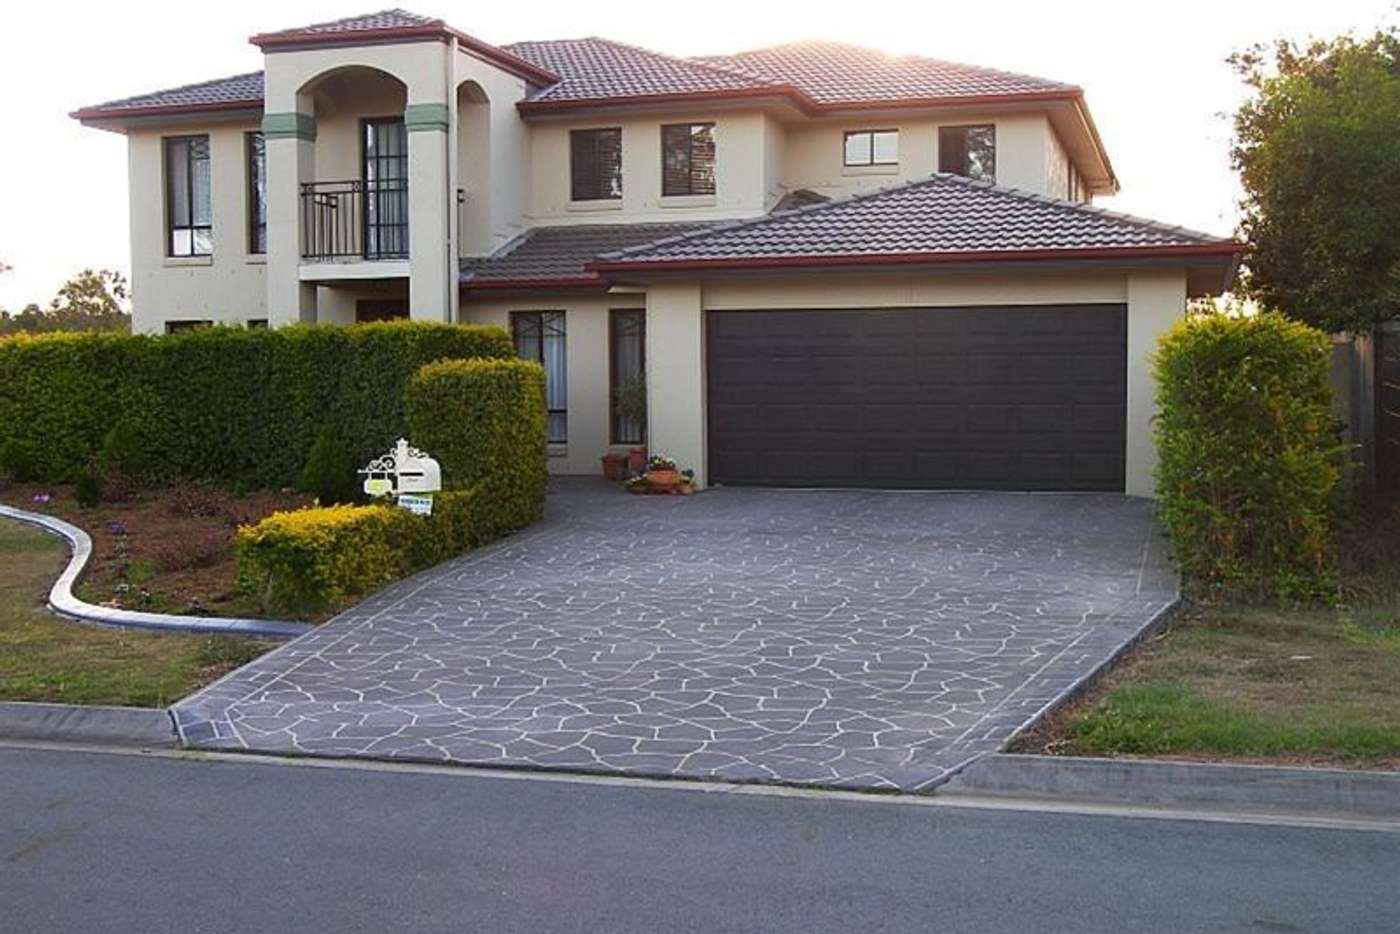 Sixth view of Homely house listing, 4 Haase Place, Bellbowrie QLD 4070